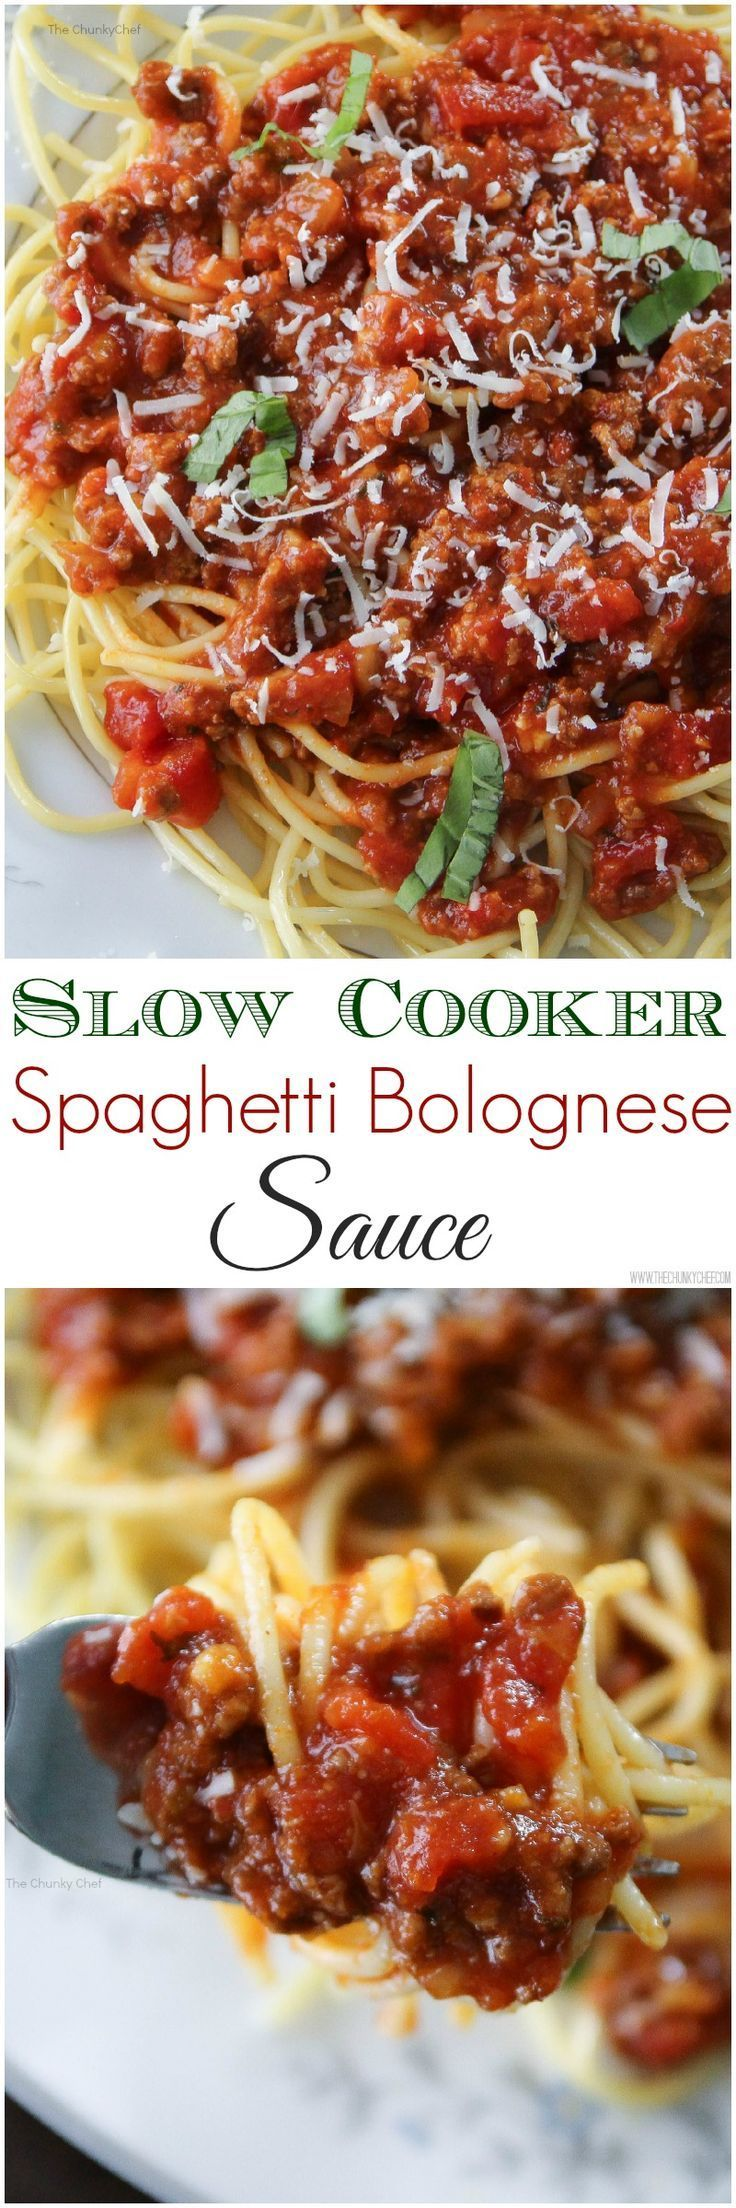 Spaghetti Bolognese - Imagine your favorite spaghetti bolognese sauce, simmered and seasoned to perfection, rich and flavorful. Now imagine it's cooked in the slow cooker!